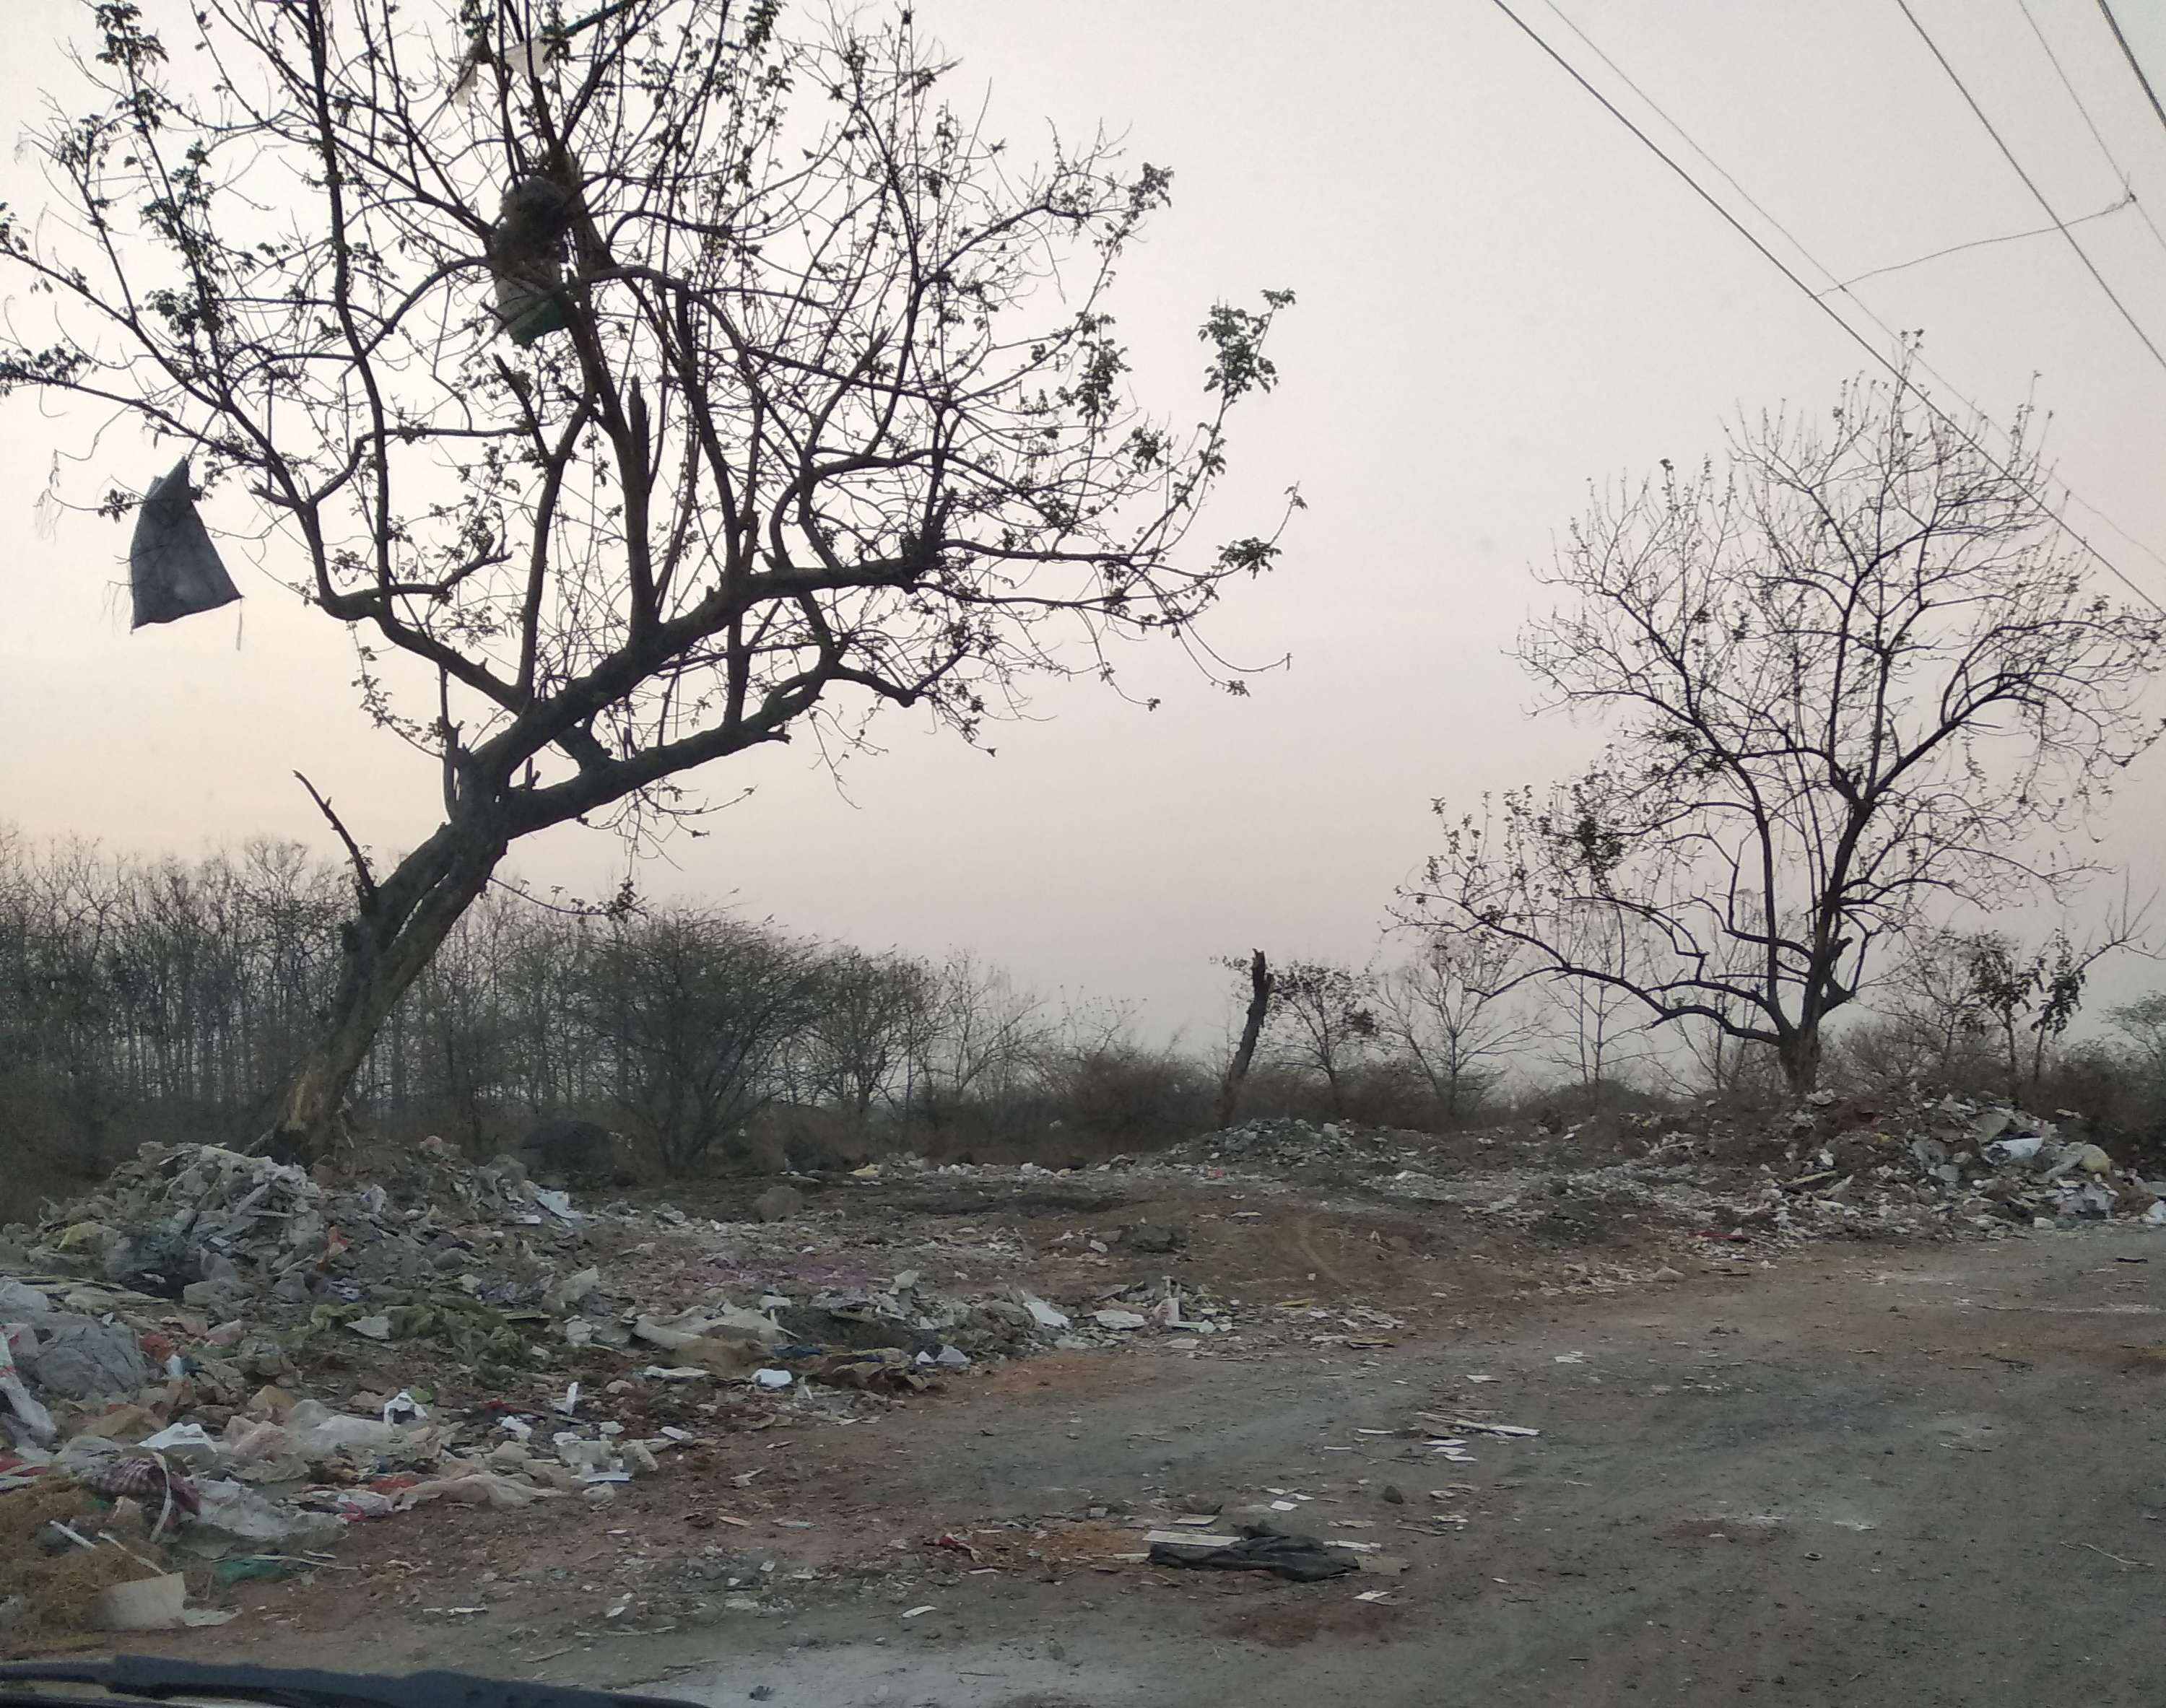 Construction and garbage dump - Times of India